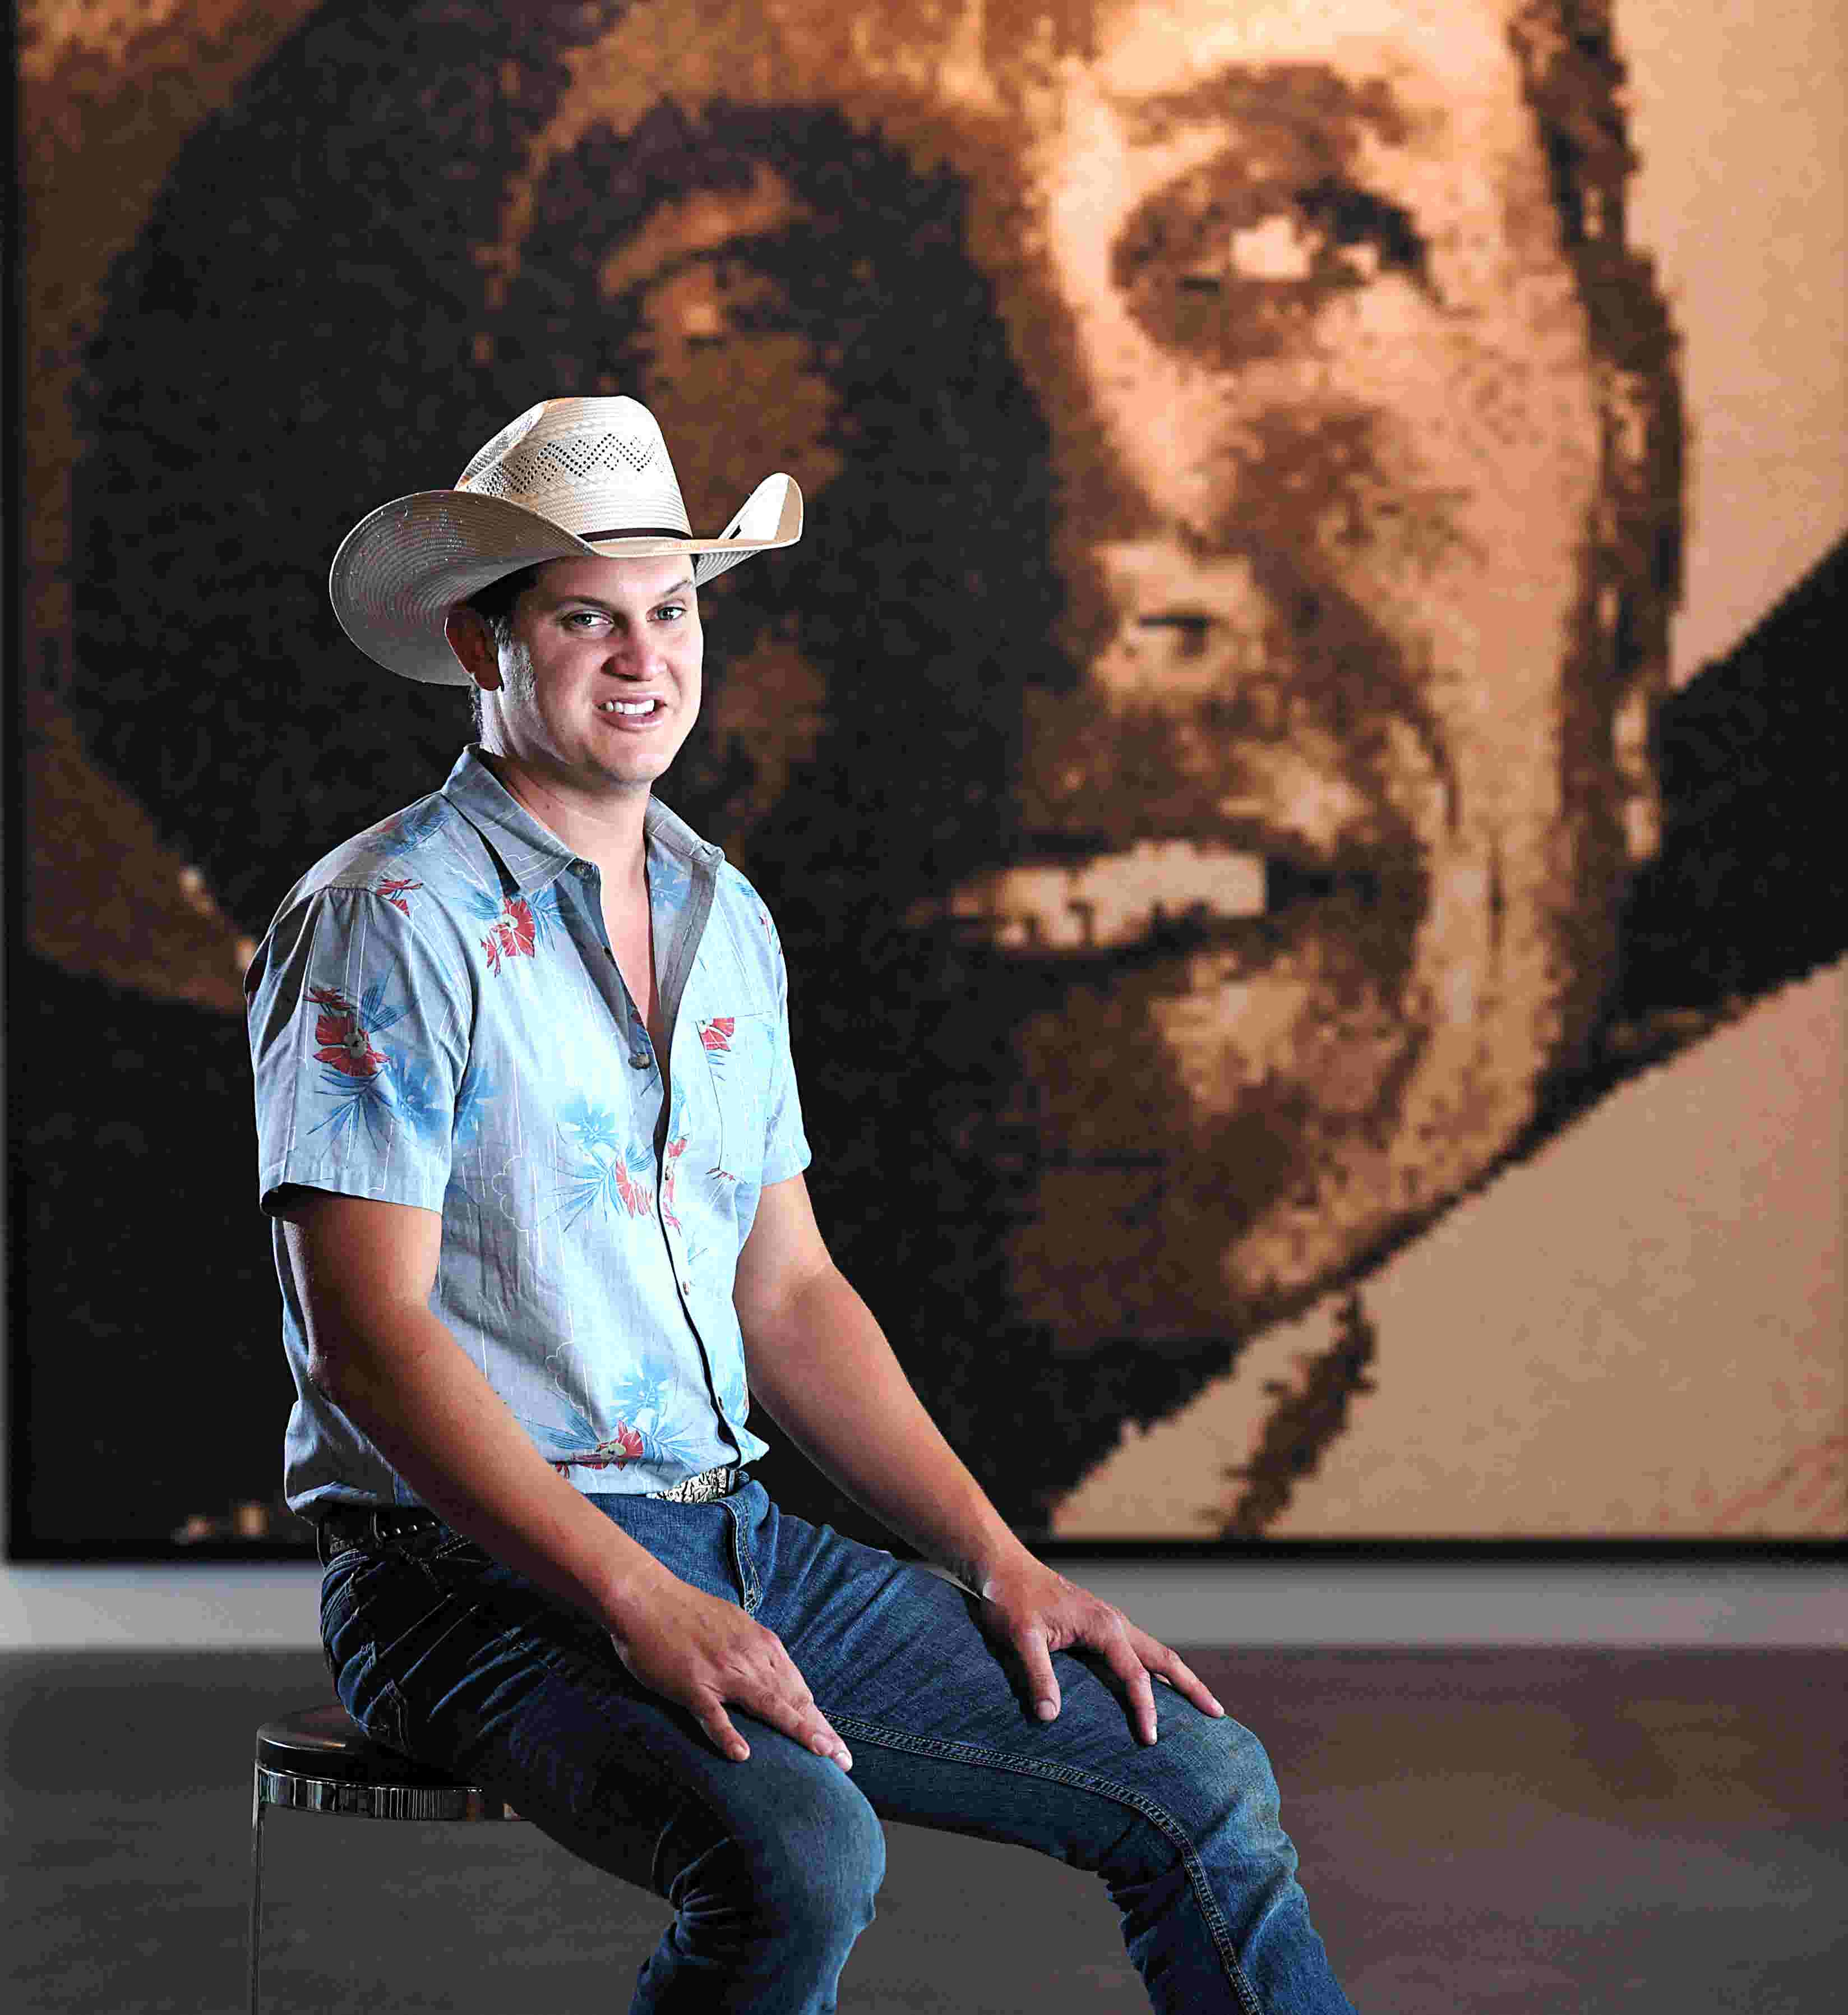 Jon Pardi's 'Heartache Medication' aims to cure what's ailing country music